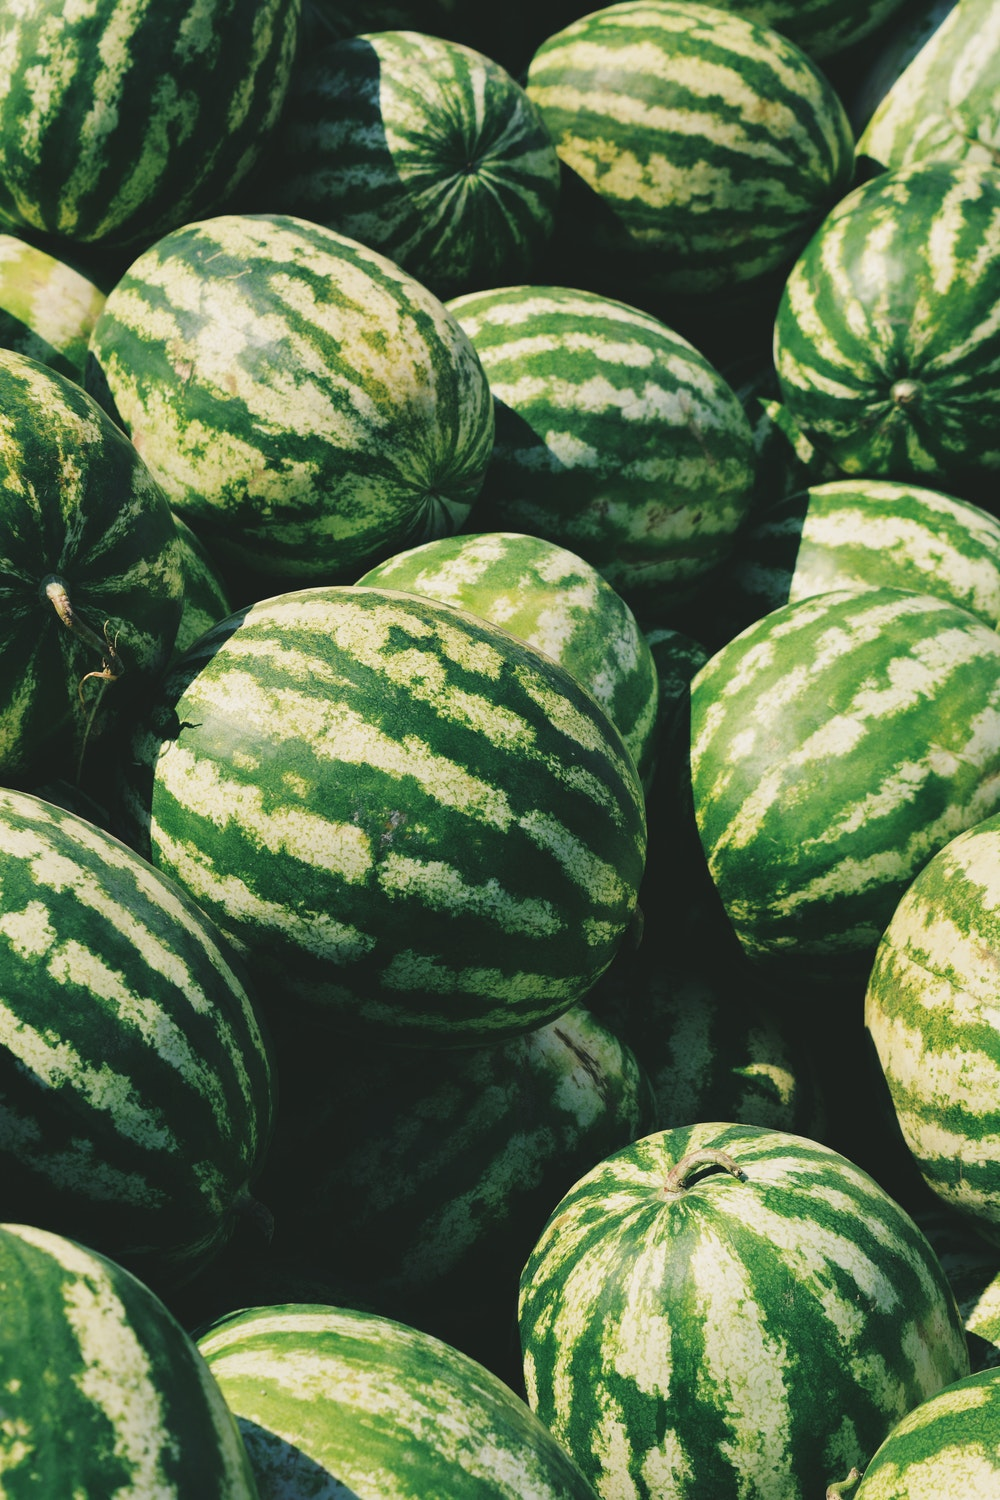 5 Ways to Use Watermelon Rinds